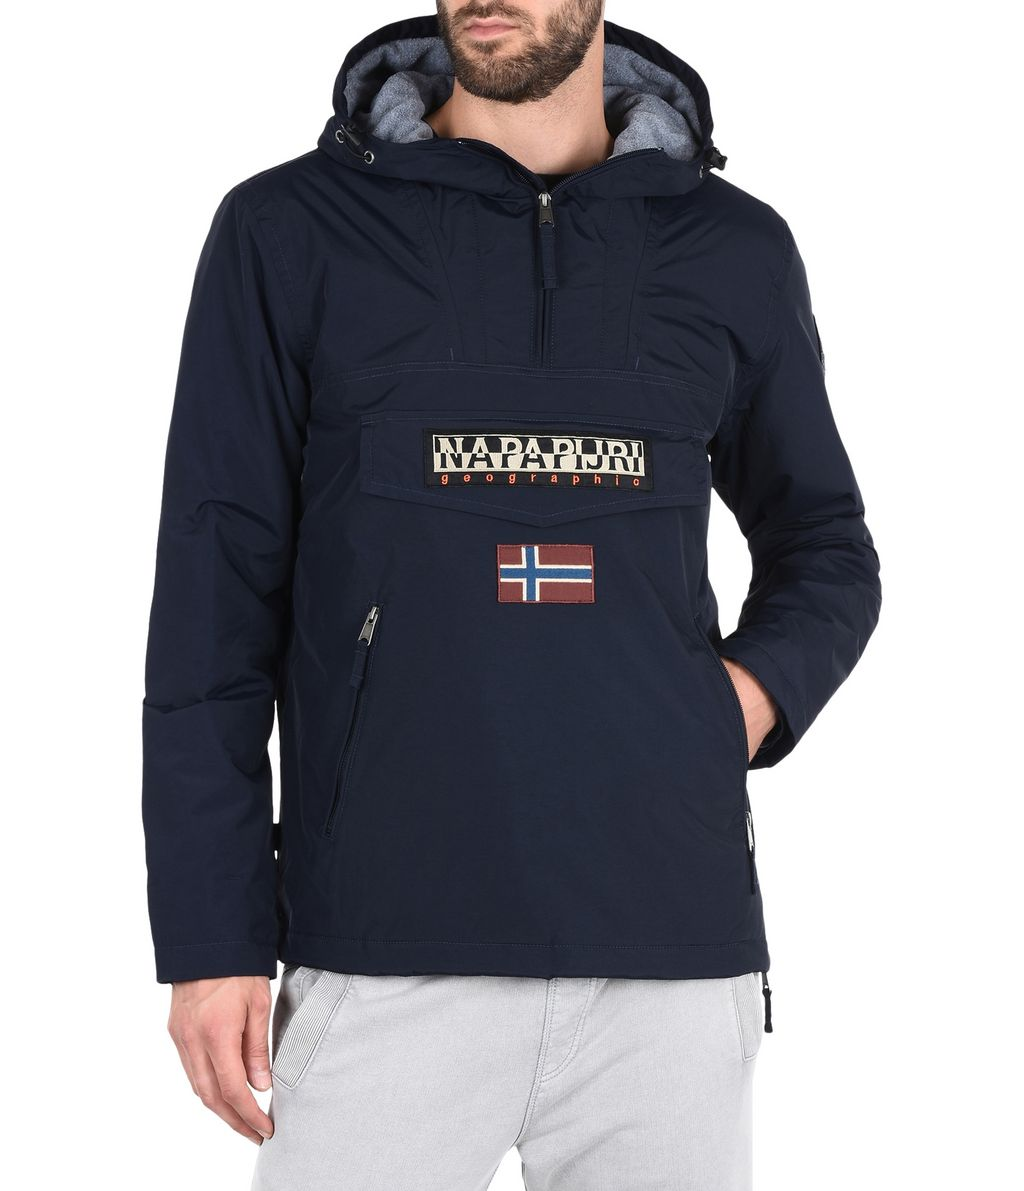 NAPAPIJRI RAINFOREST WINTER POCKETS MAN RAINFOREST,DARK BLUE